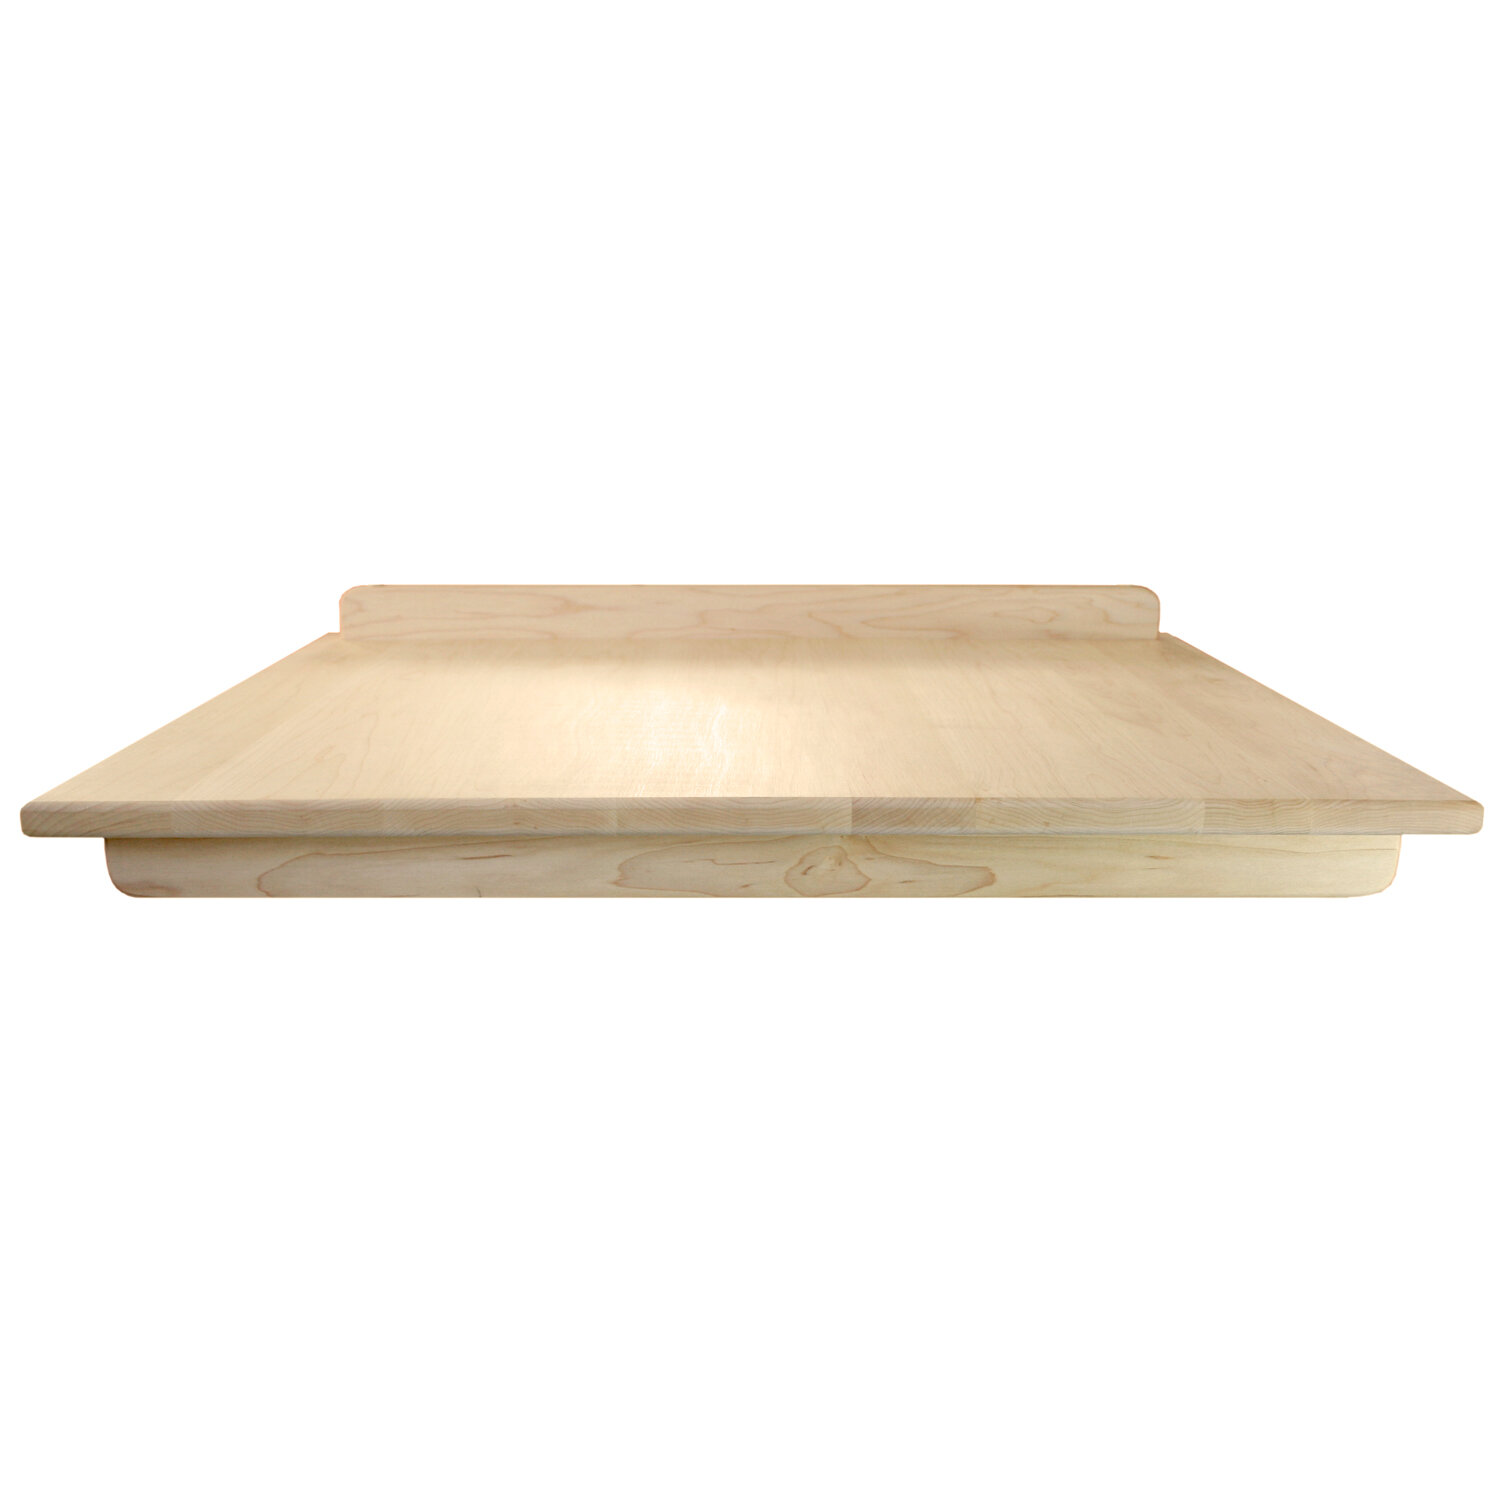 Large hardwood cutting kneading pastry board w//stability edge FREE SHIPPING